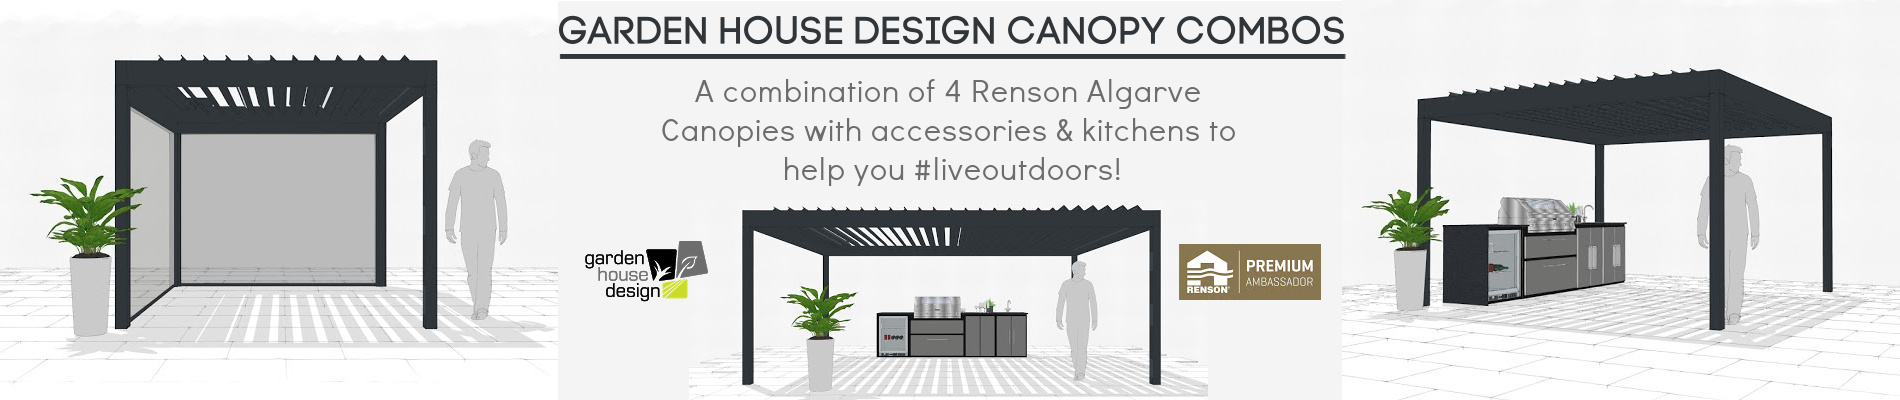 Link to page Renson Algarve Canopy Combos